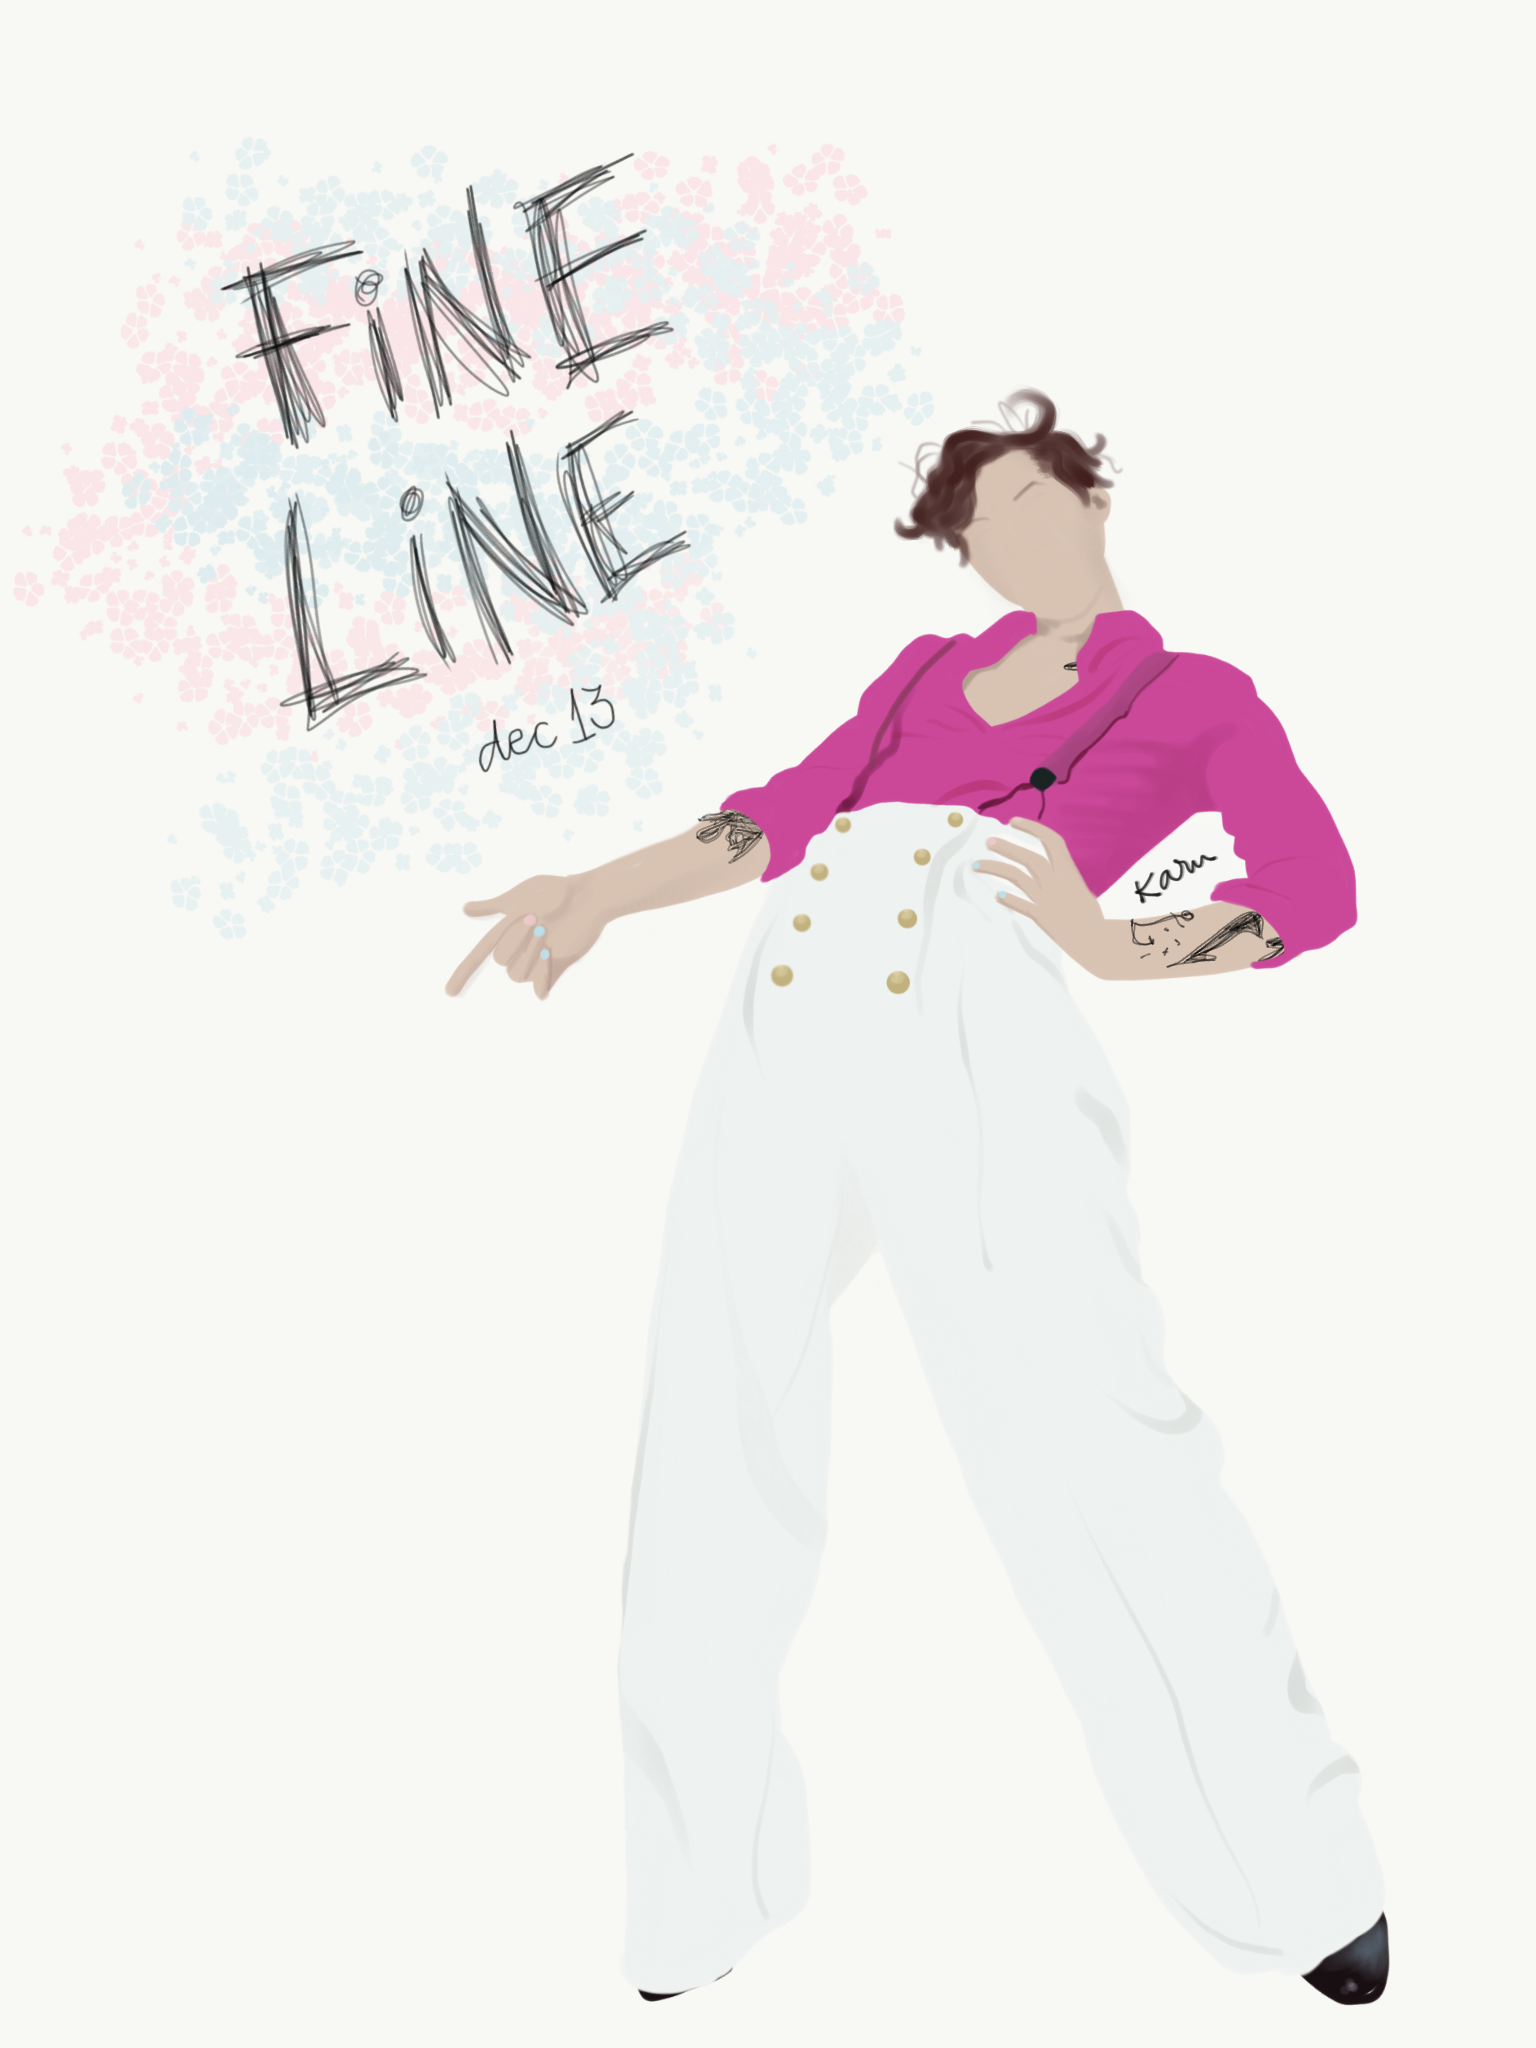 Fine Line By Harry Styles Harry Styles Poster Harry Styles Drawing Harry Styles